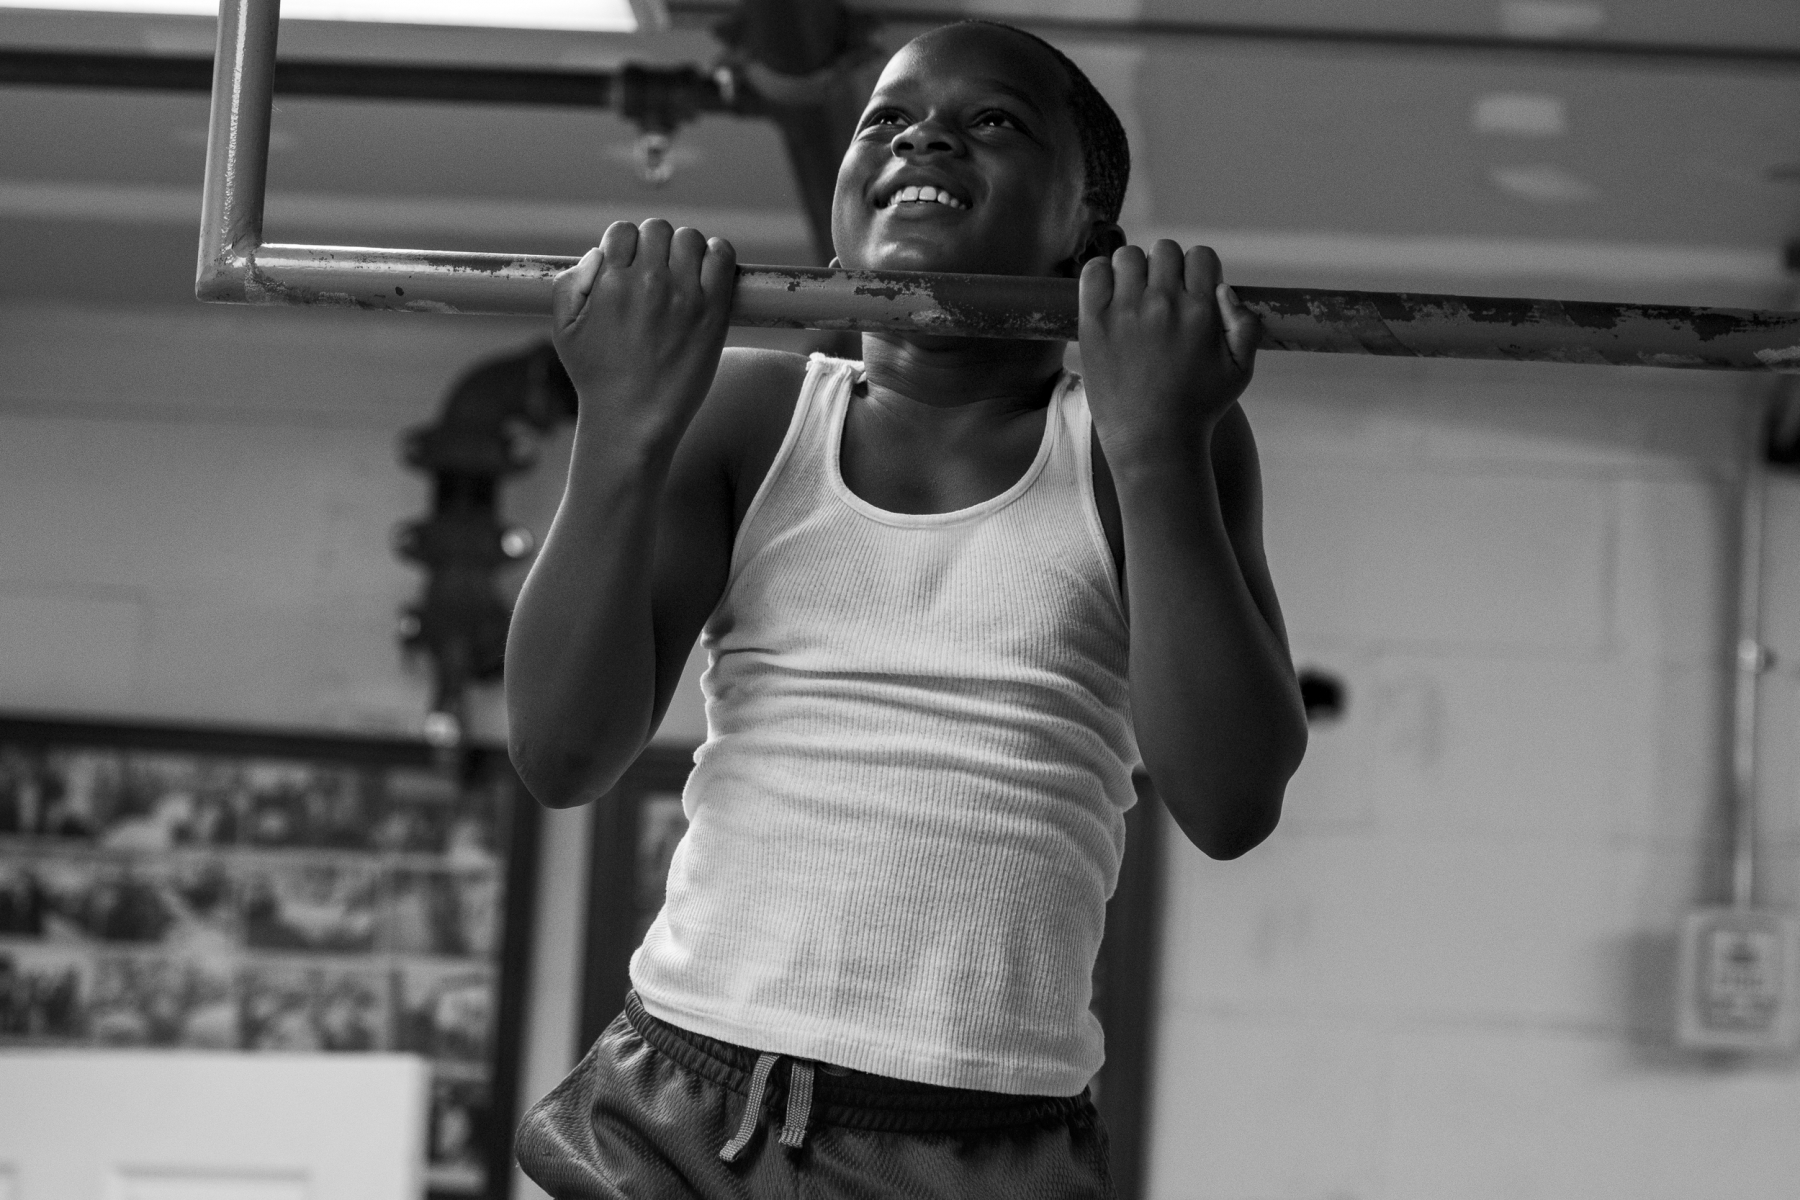 Da'vonne has been coming to classes at the gym since he was 4 years old. He and other boxers show off their pullups to on another during practice on Oct. 9.